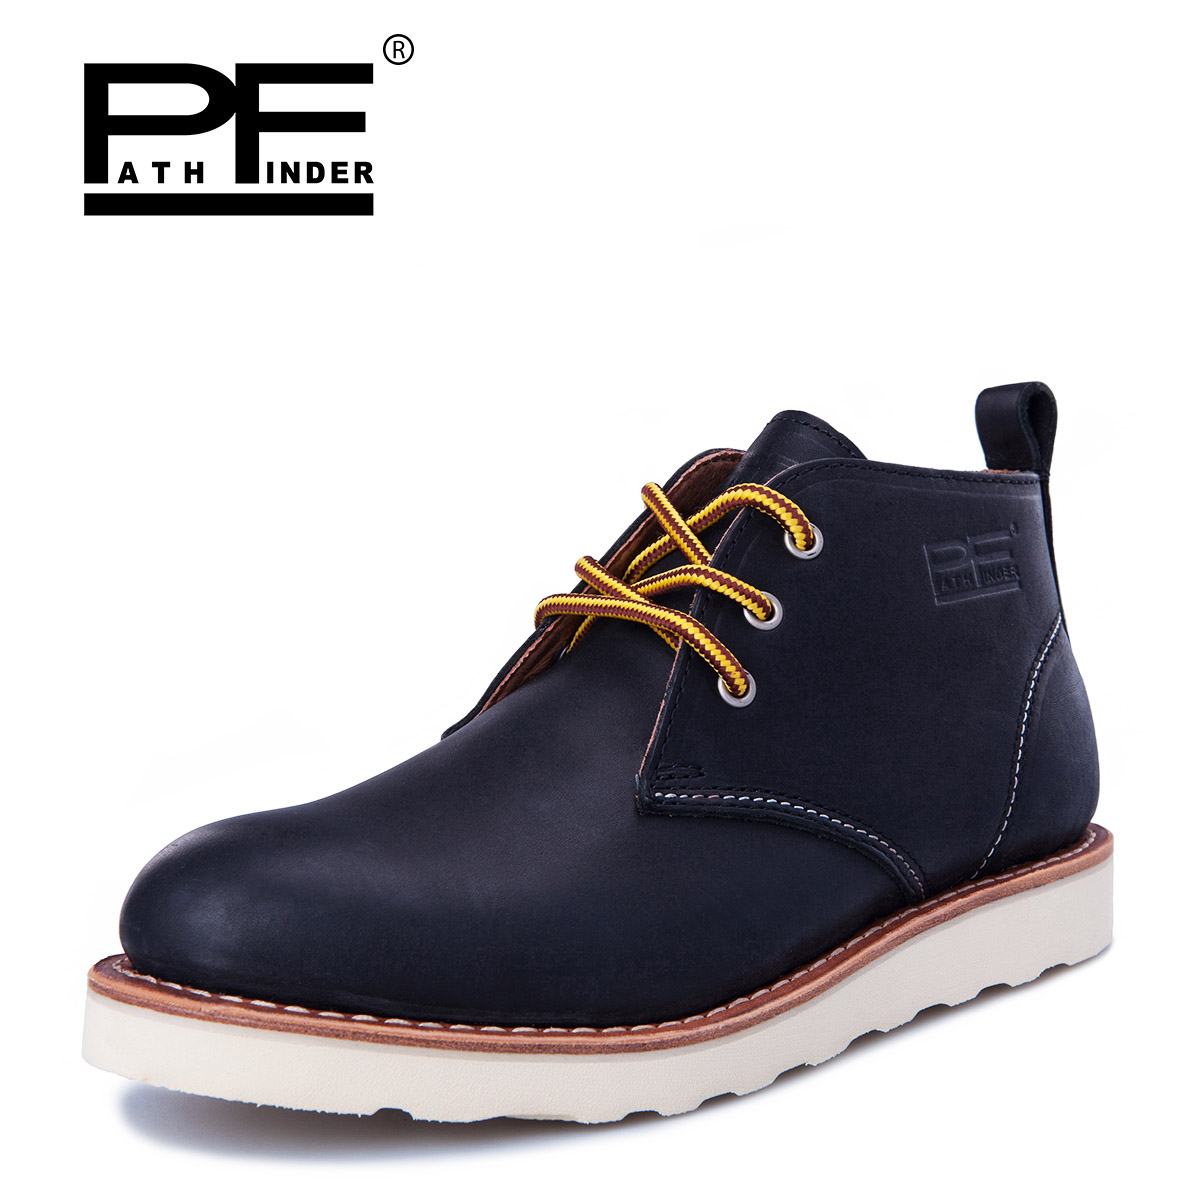 Pathfinder High Quality Lace Up Men Boots, Casual Winter Genuine Leather Boots, Big Size Fur Ankle Martins M Shoes 003 002118 01 003 120457 01 replacement projector bare lamp for christie lw400